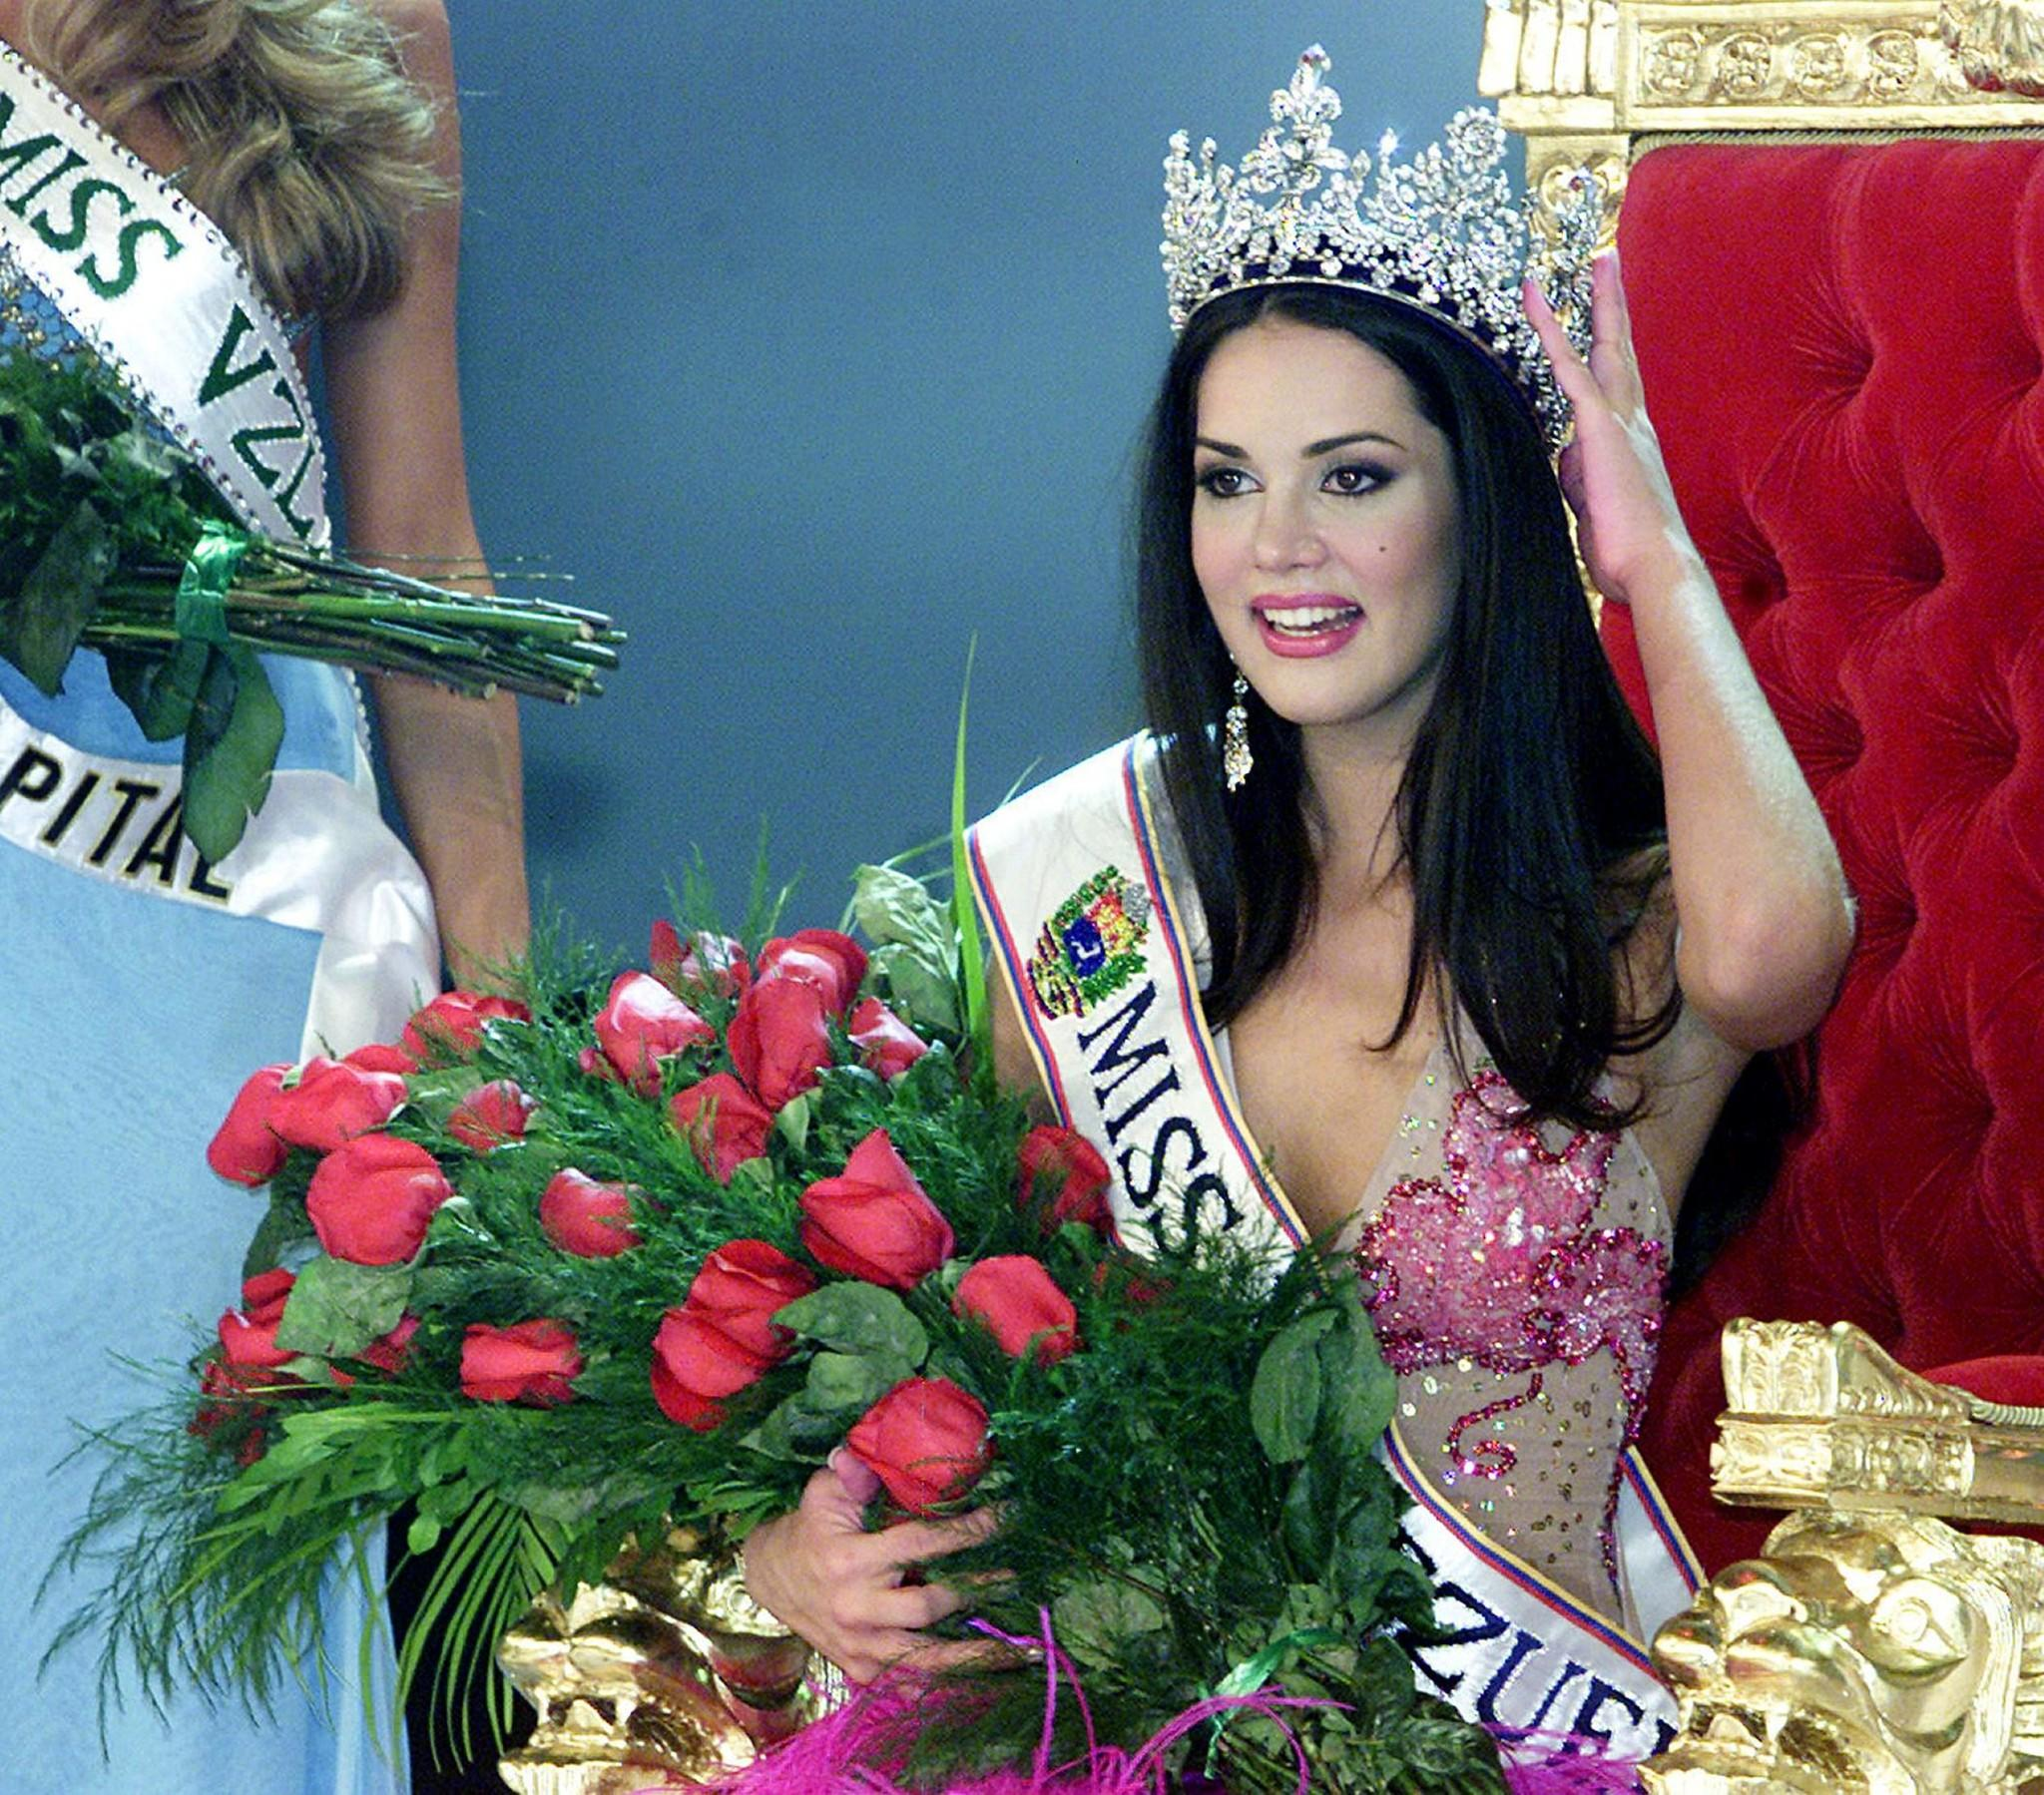 Venezuelan Monica Spear poses after being elected Miss Venezuela, in Caracas, on September 23, 2004. Former beauty queen turned soap opera star Monica Spear was found shot to death on January 6, 2014 with her husband in their car on a roadside in Venezuela, local media reported on January 7. Spear's five-year-old daughter was found alive in the car on Monday night and was in stable condition after being treated at a medical center, Venezuelan authorities said. Authorities confirmed that Spear, 29, and her husband Thomas Henry Berry, 39, were found dead Monday night inside their car on a highway linking the cities of Puerto Cabello and Valencia.